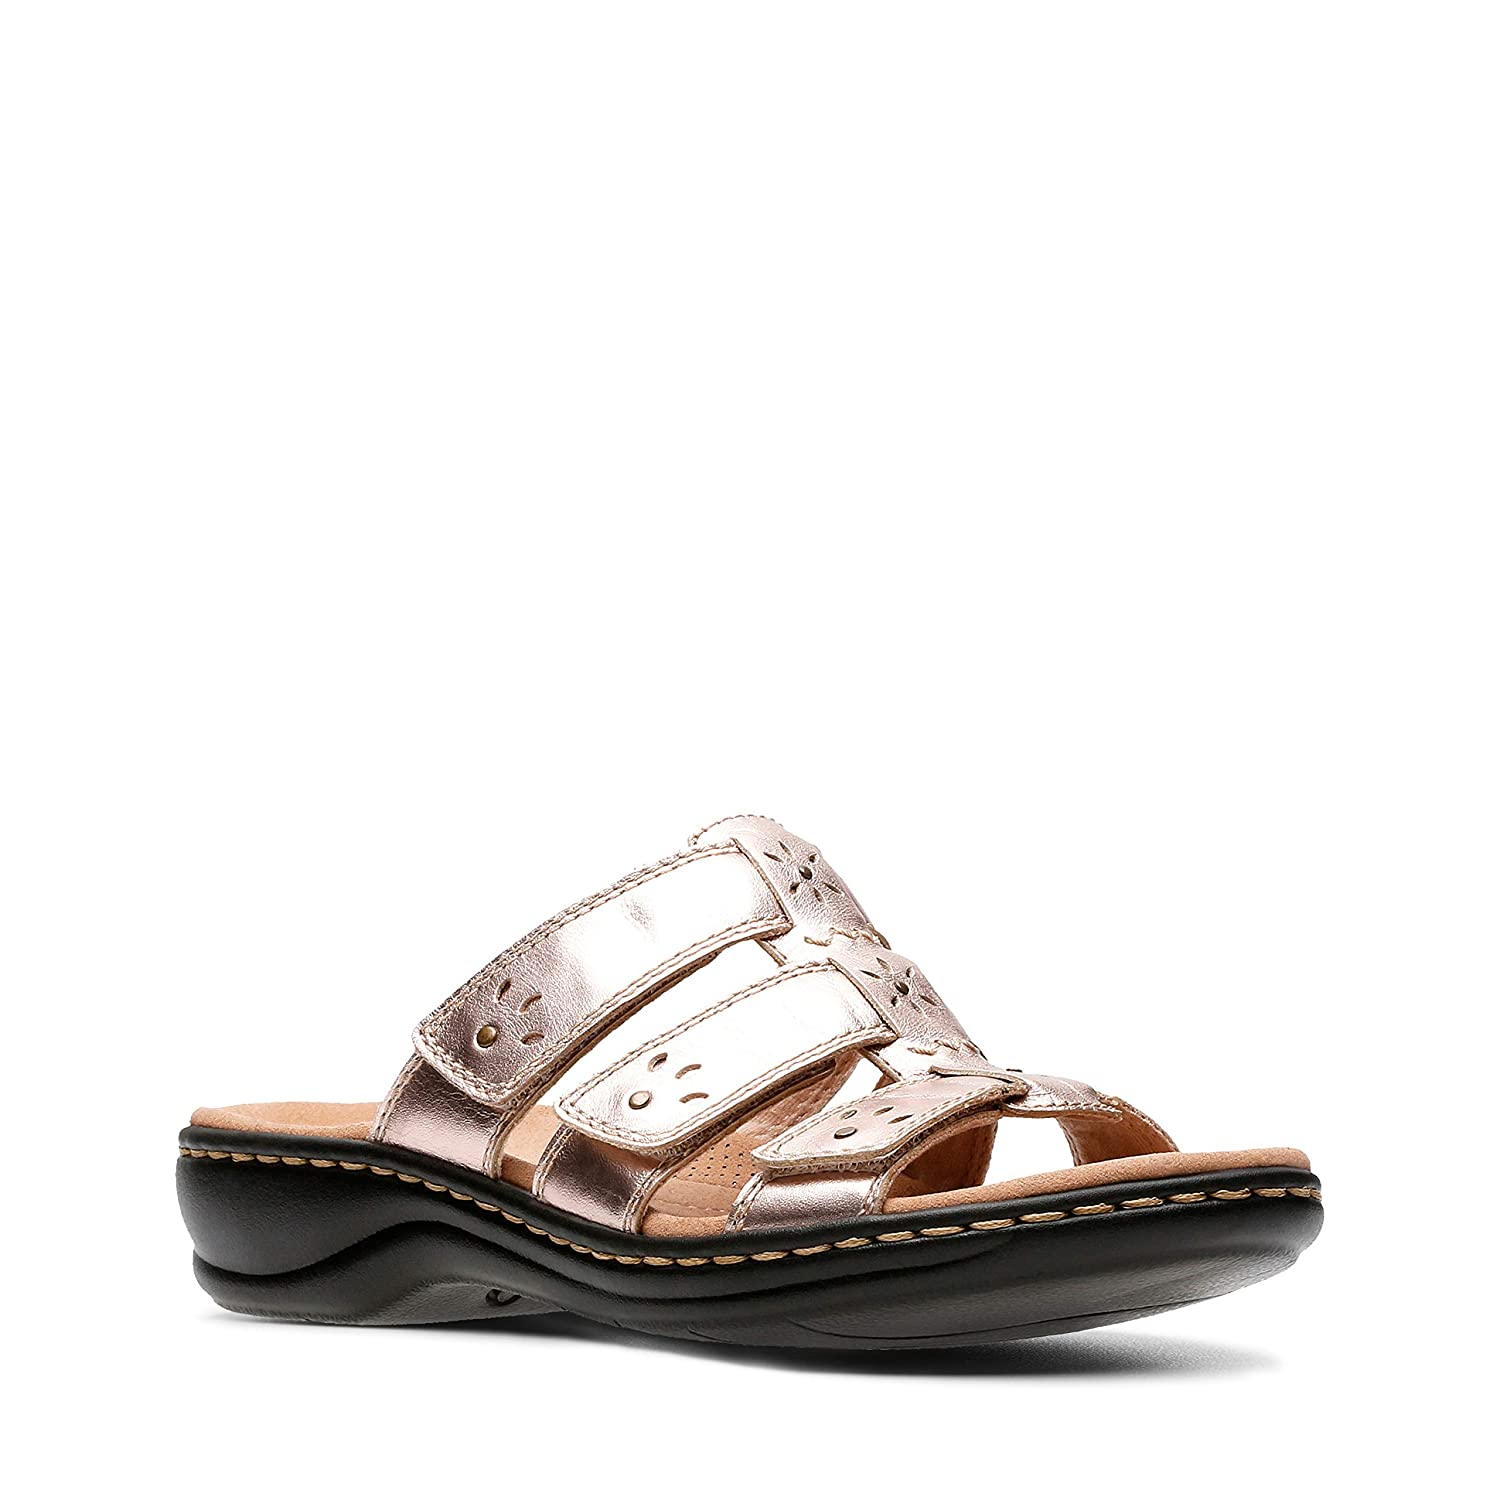 Clarks Leisa Spring Leather Sandals in